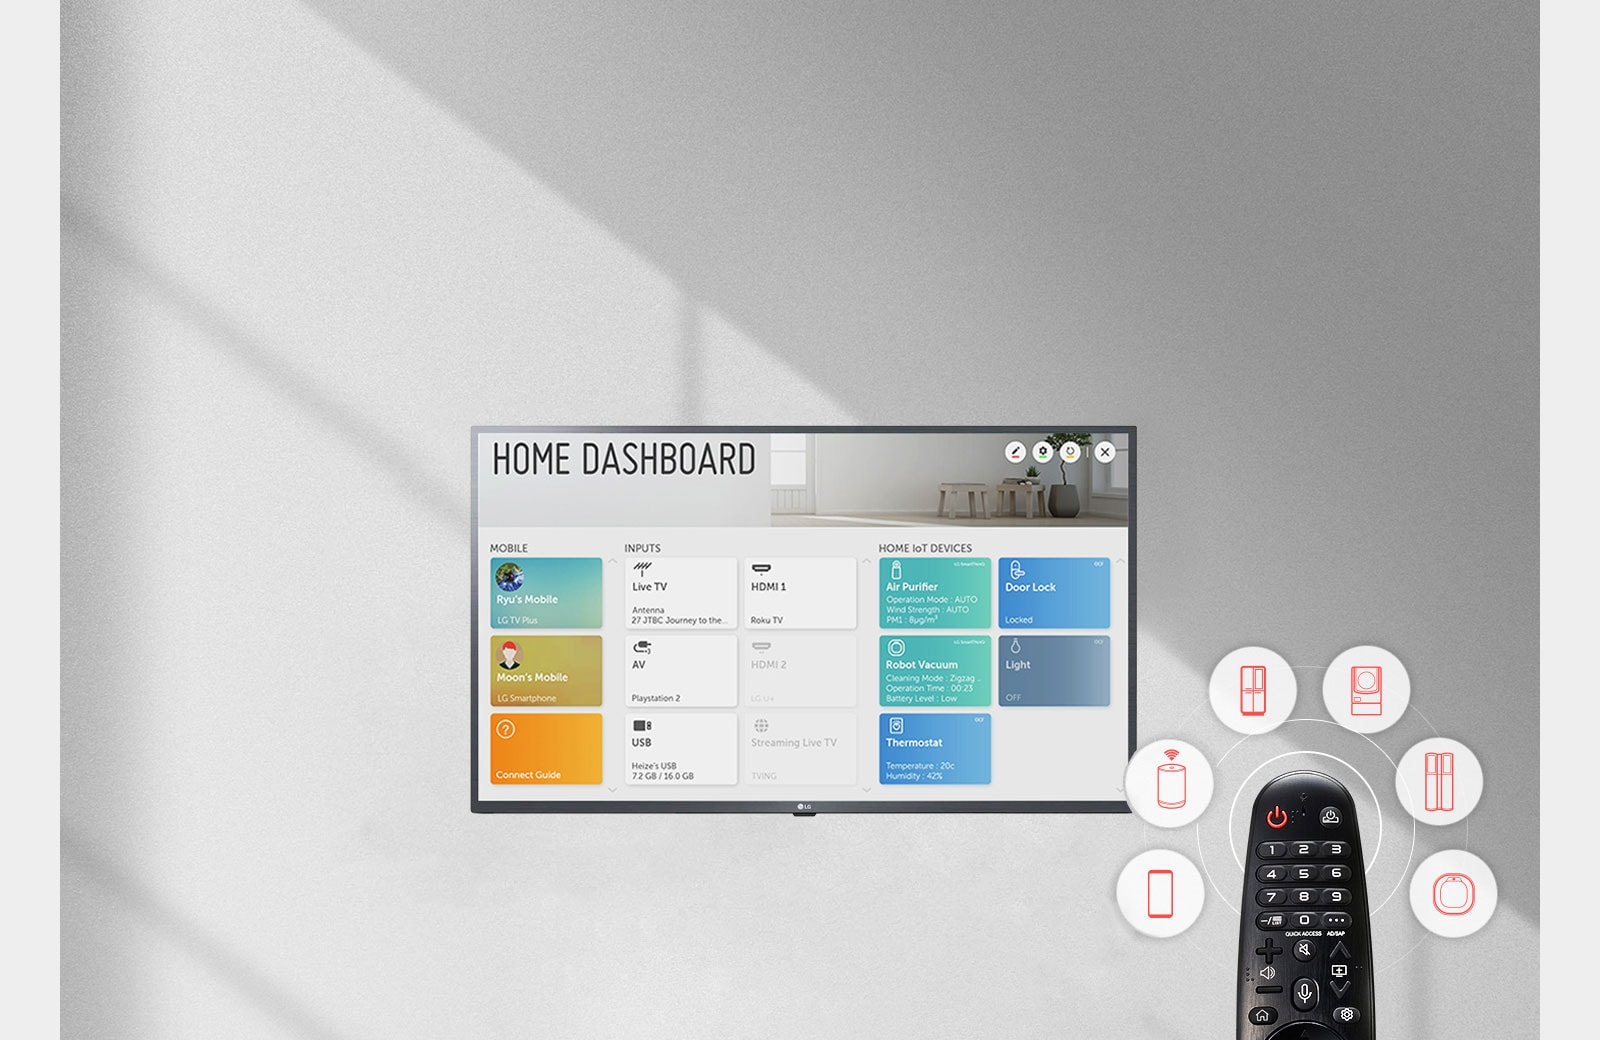 LG Ultra HD TV Home Dashboard